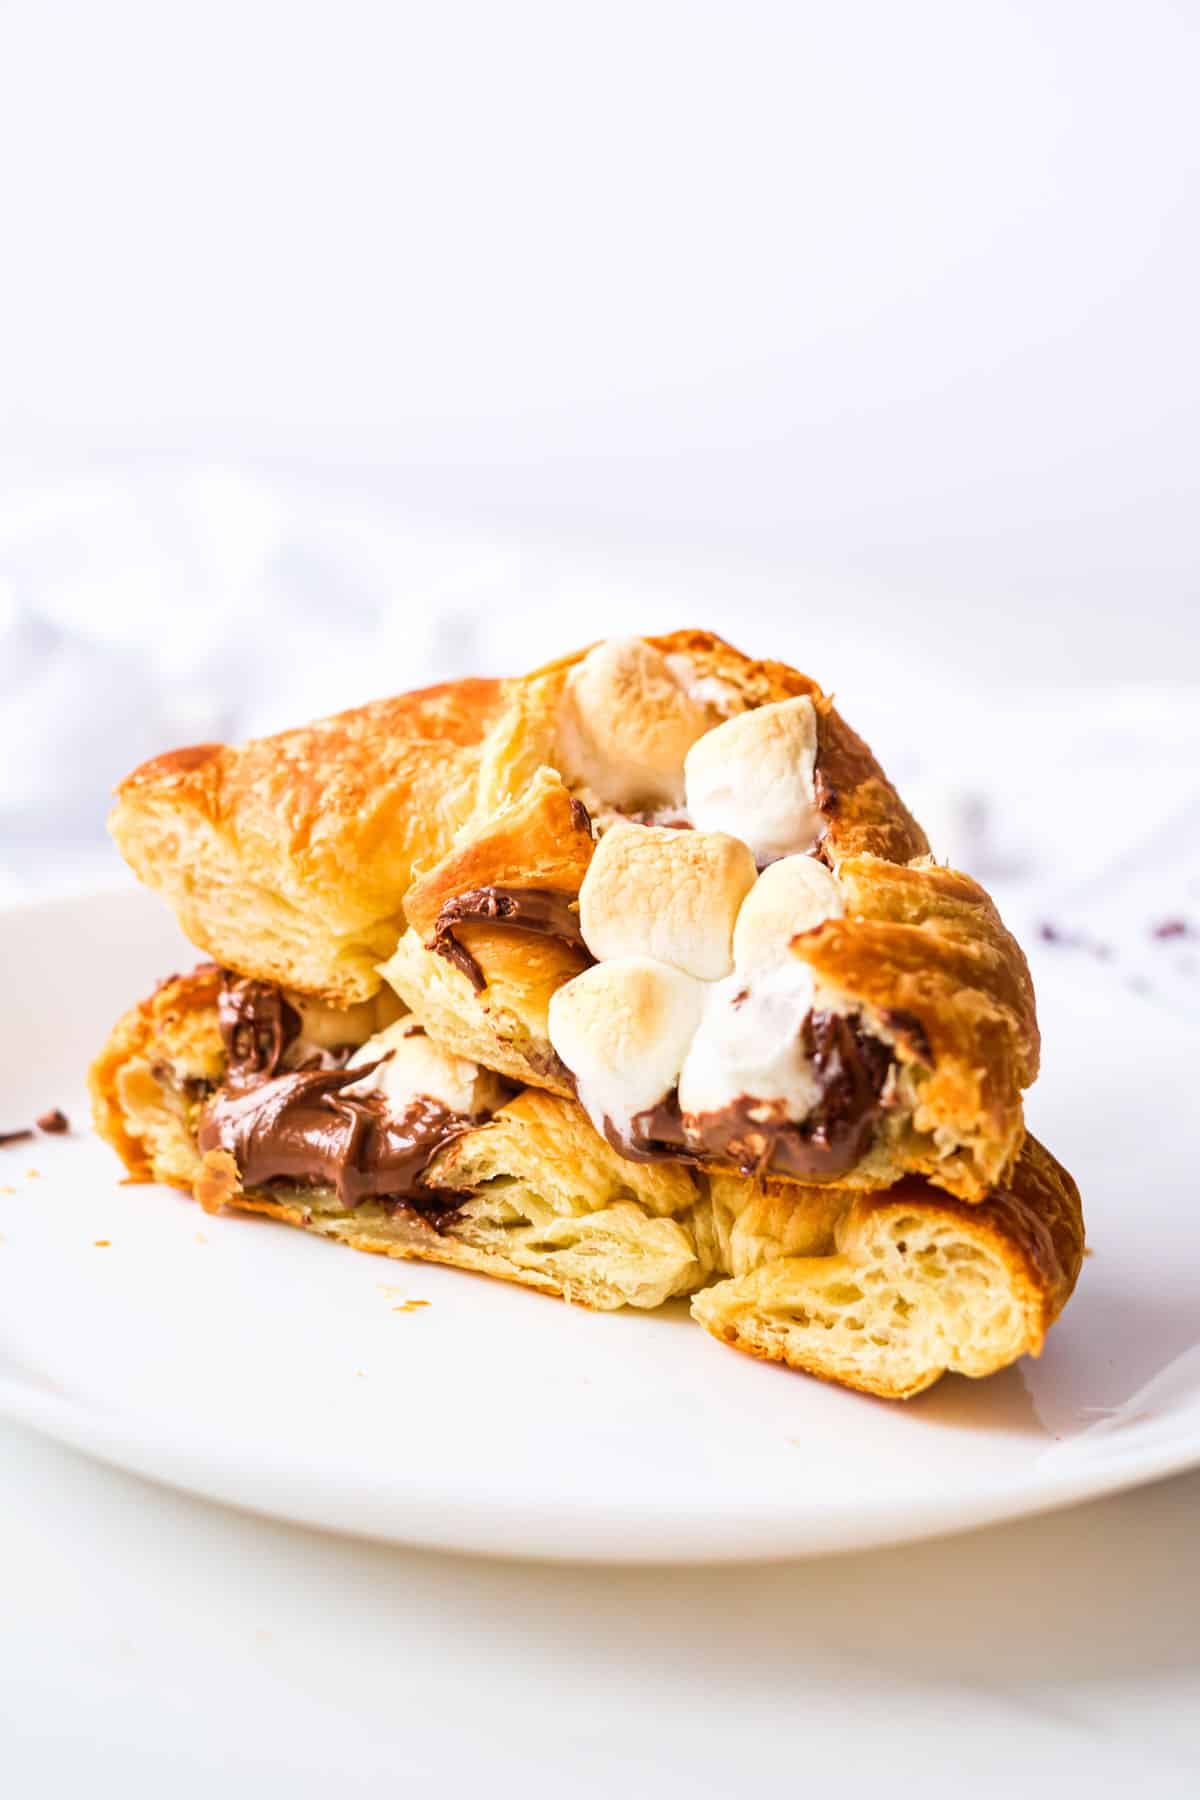 one completed stuffed croissant breakfast boat cut on half and served on a white plate